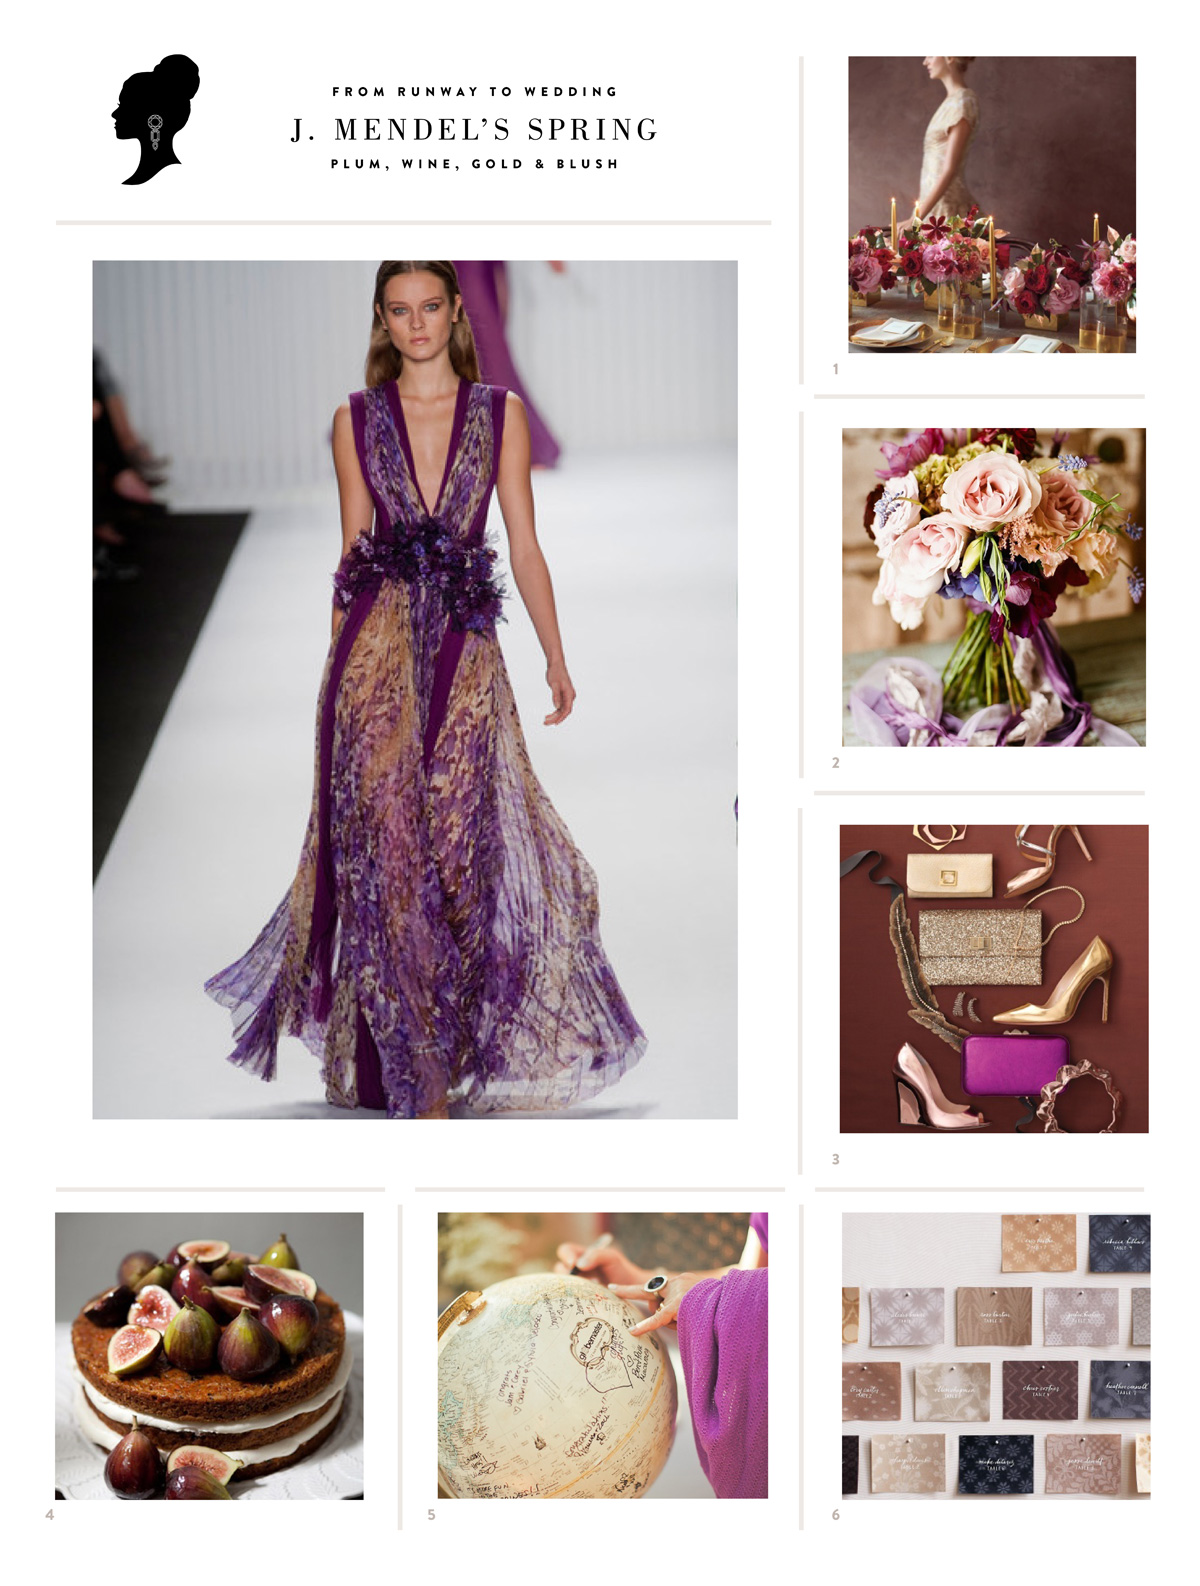 Amazing Plum Wedding Decorations Photos Design Ideas – Dievoon